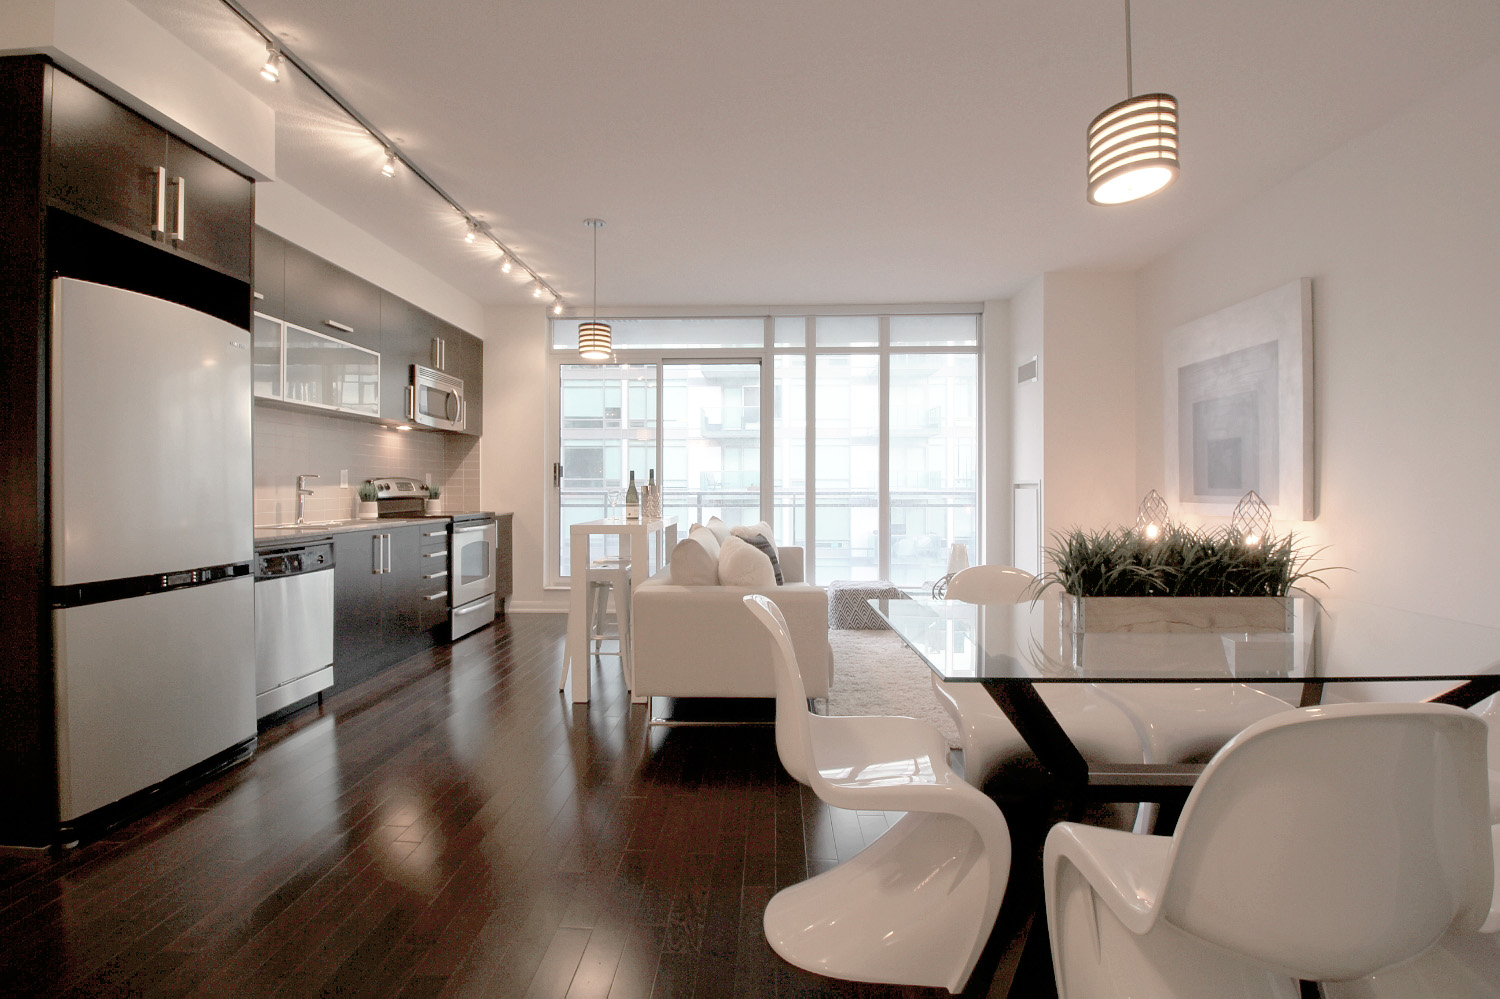 03 - Kitchen and Dining.jpg